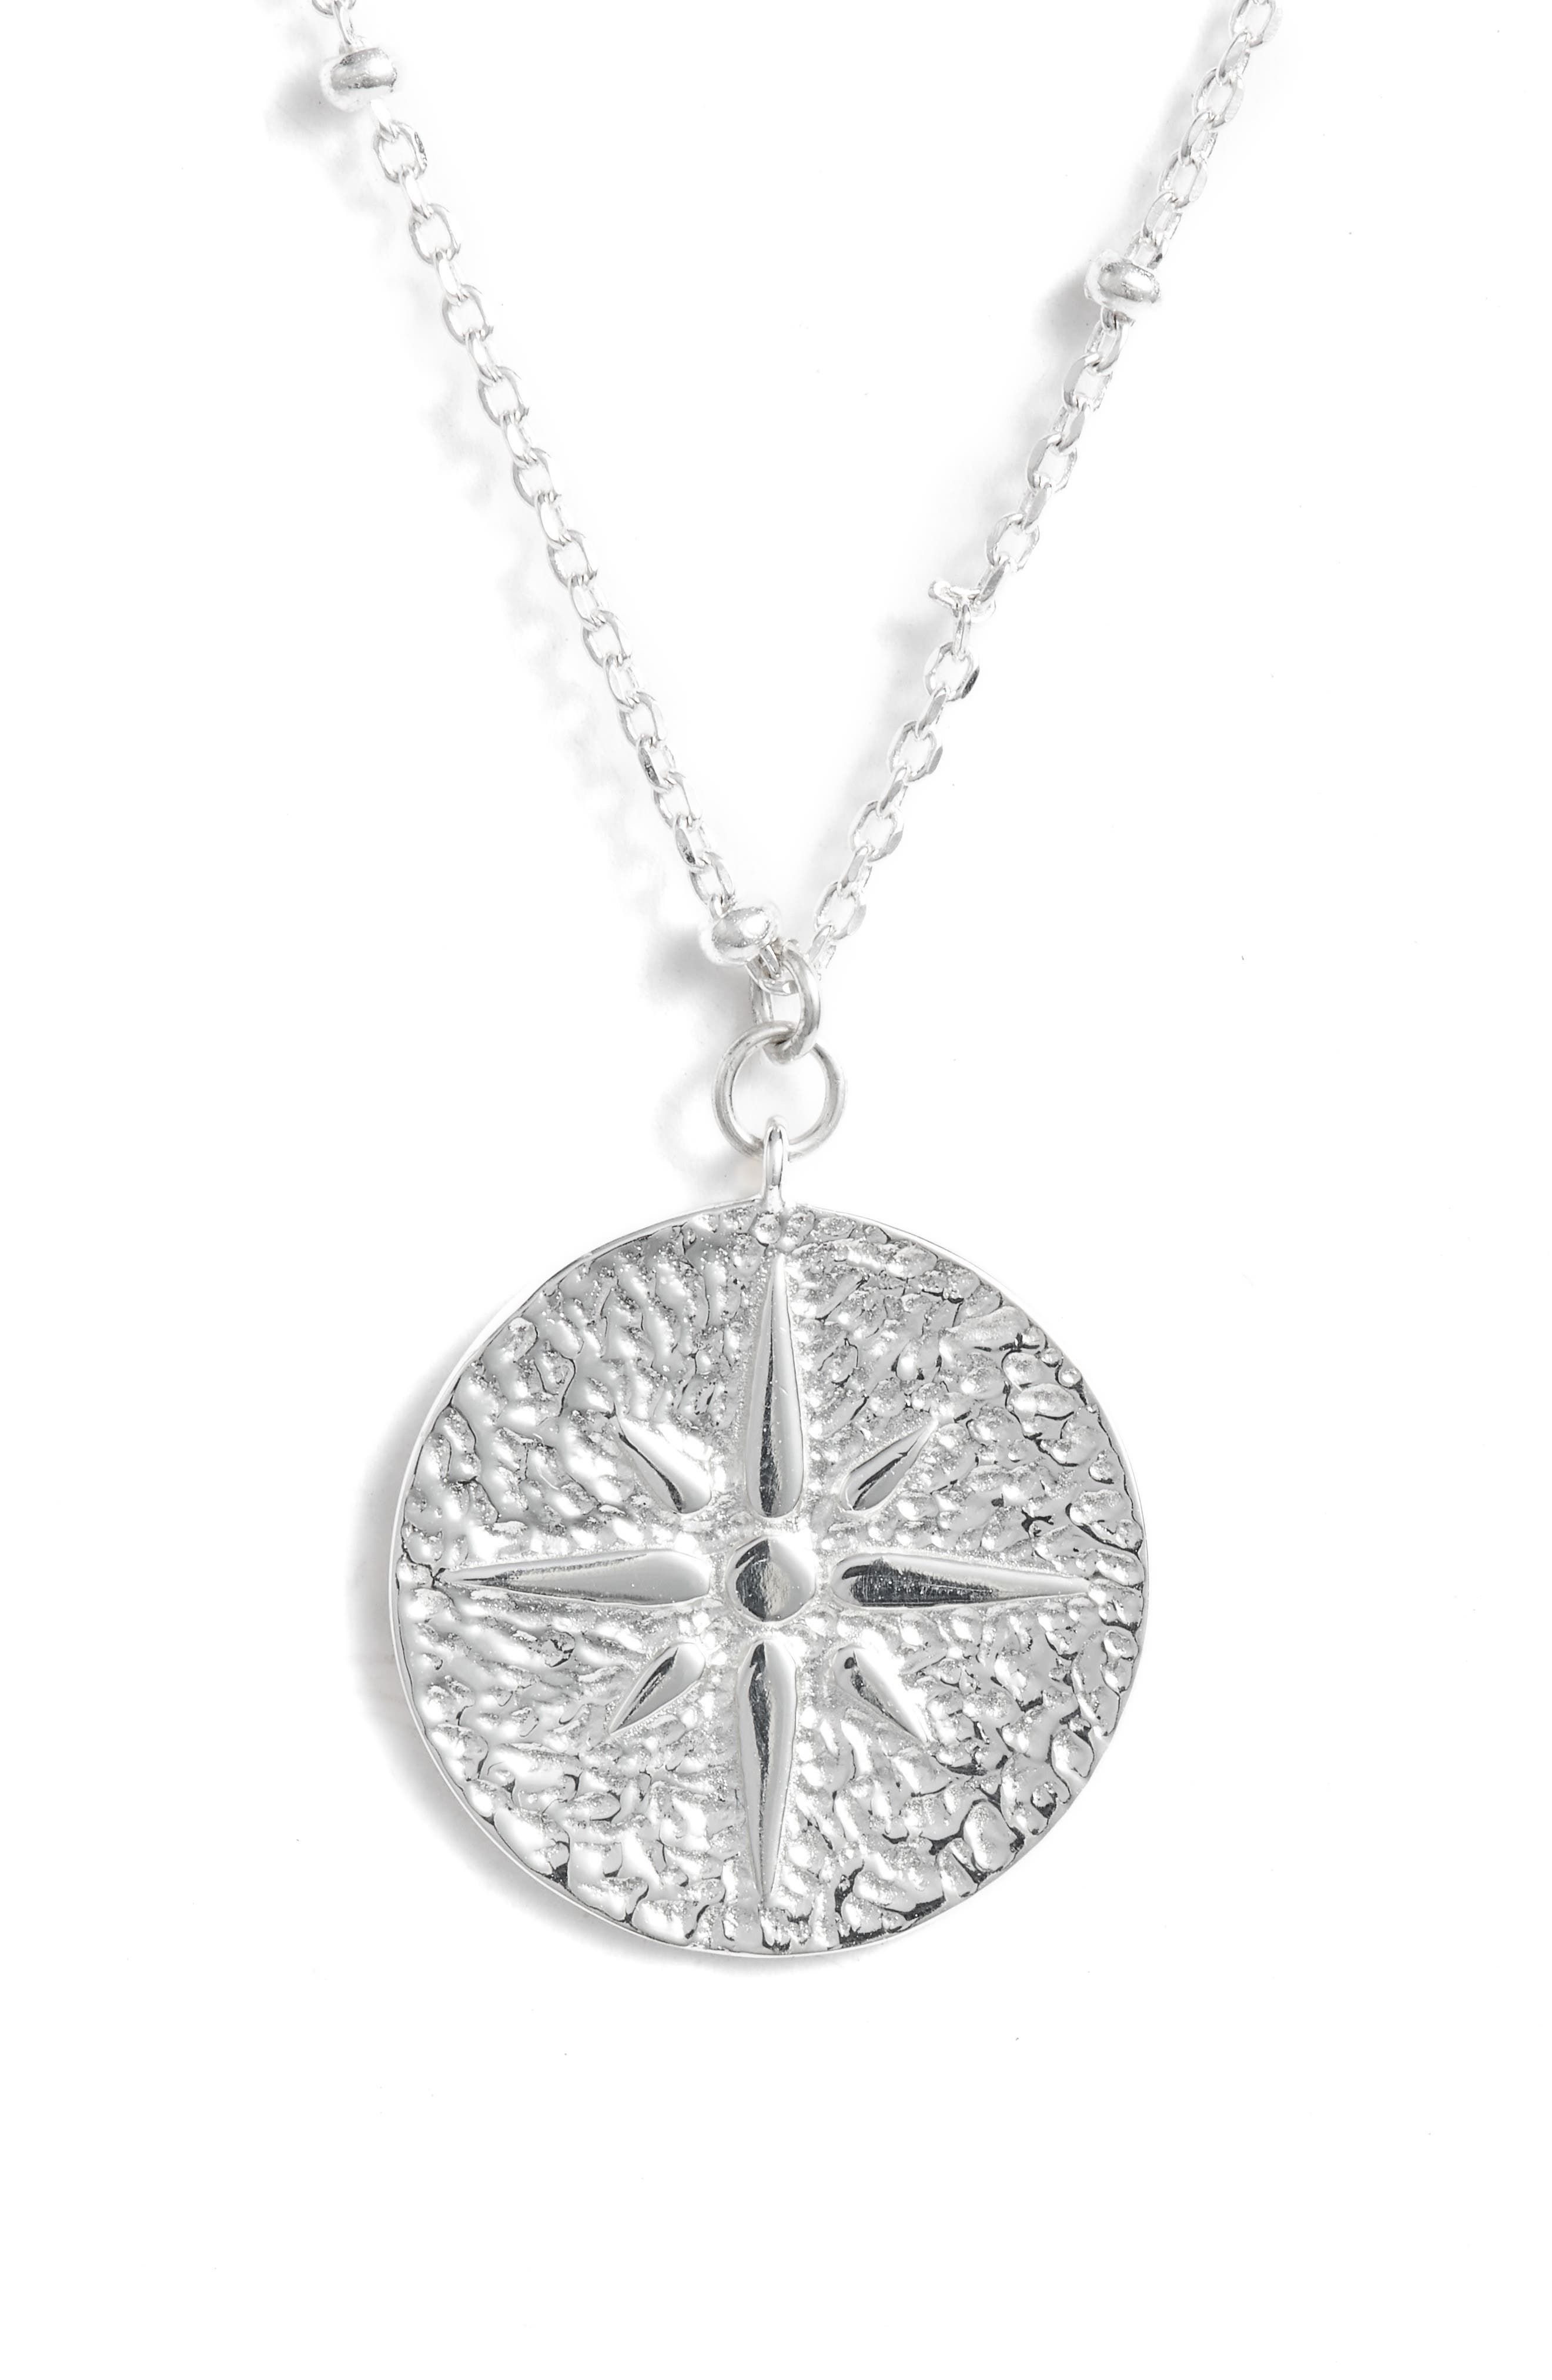 North Star Medallion Necklace,                             Main thumbnail 1, color,                             SILVER